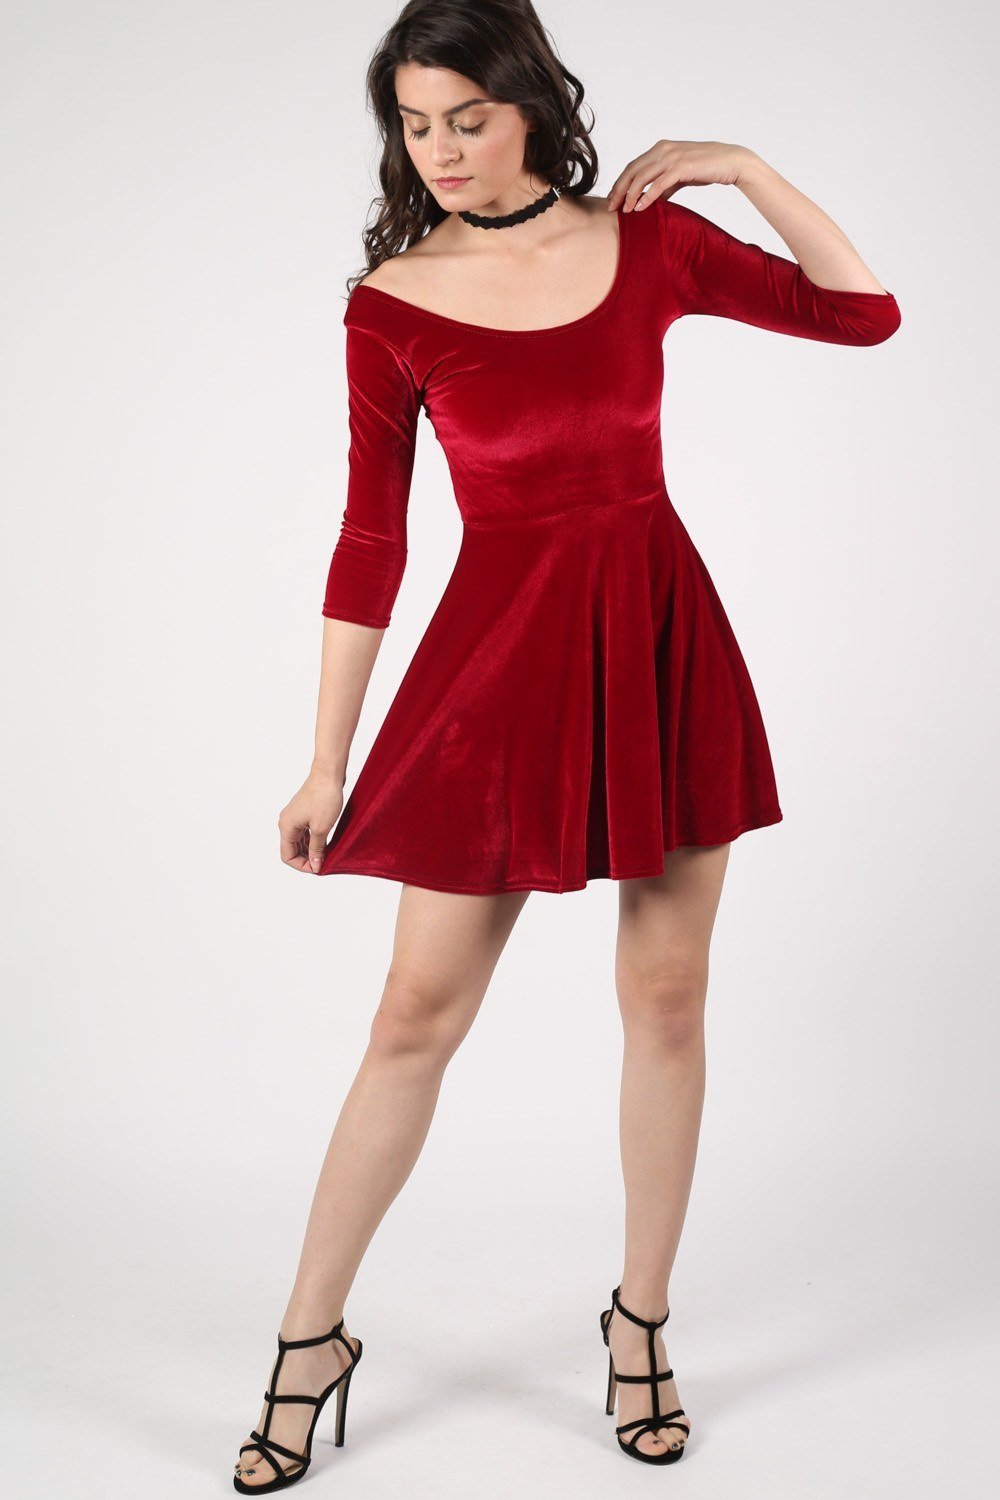 3/4 Sleeve Velvet Skater Dress in Wine Red 0